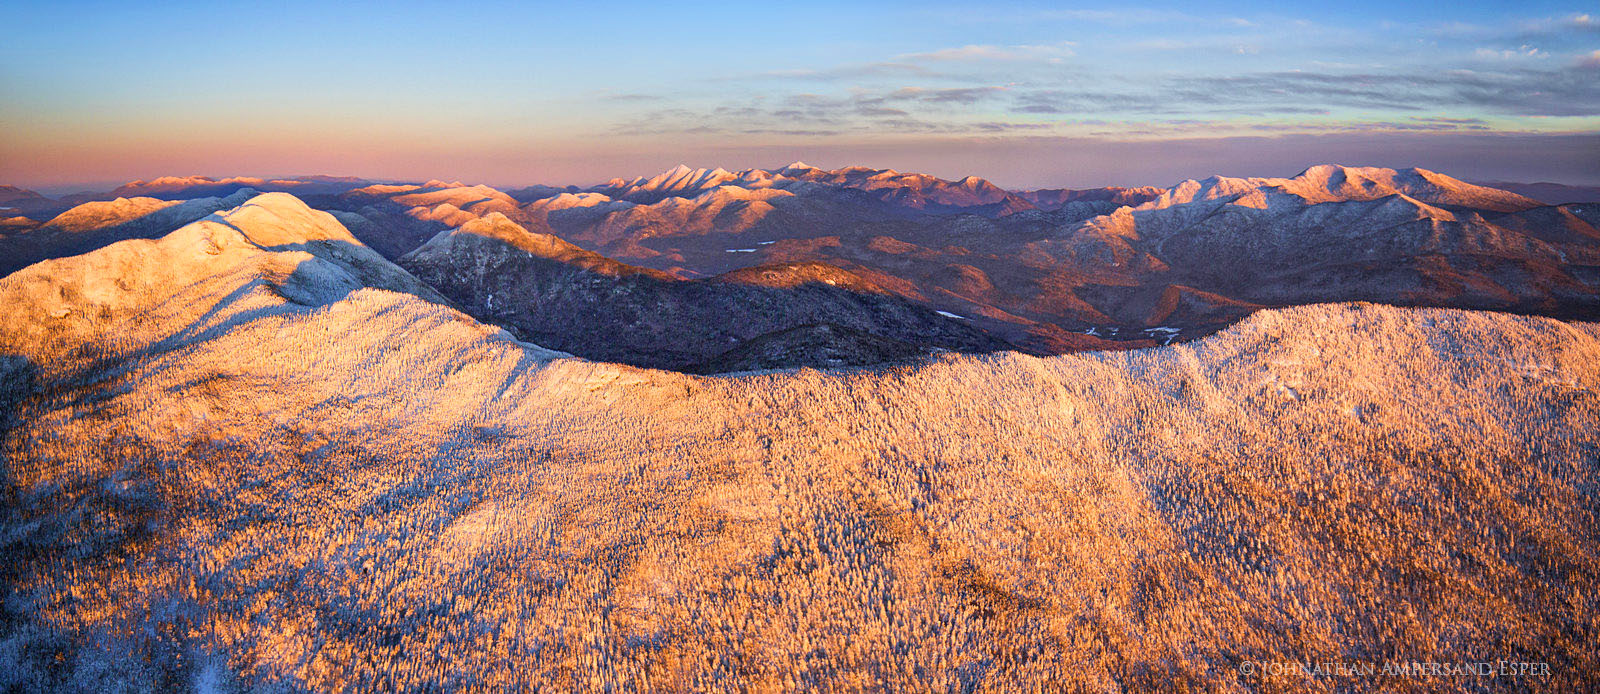 Seward Range,Seward Mt,aerial,winter,sunset,aerial winter,alpenglow,light,2016,Donaldson,Emmons,Santanoni,Santanoni Range,High Peaks,Adirondack Mountains,Adirondack,peaks,, photo